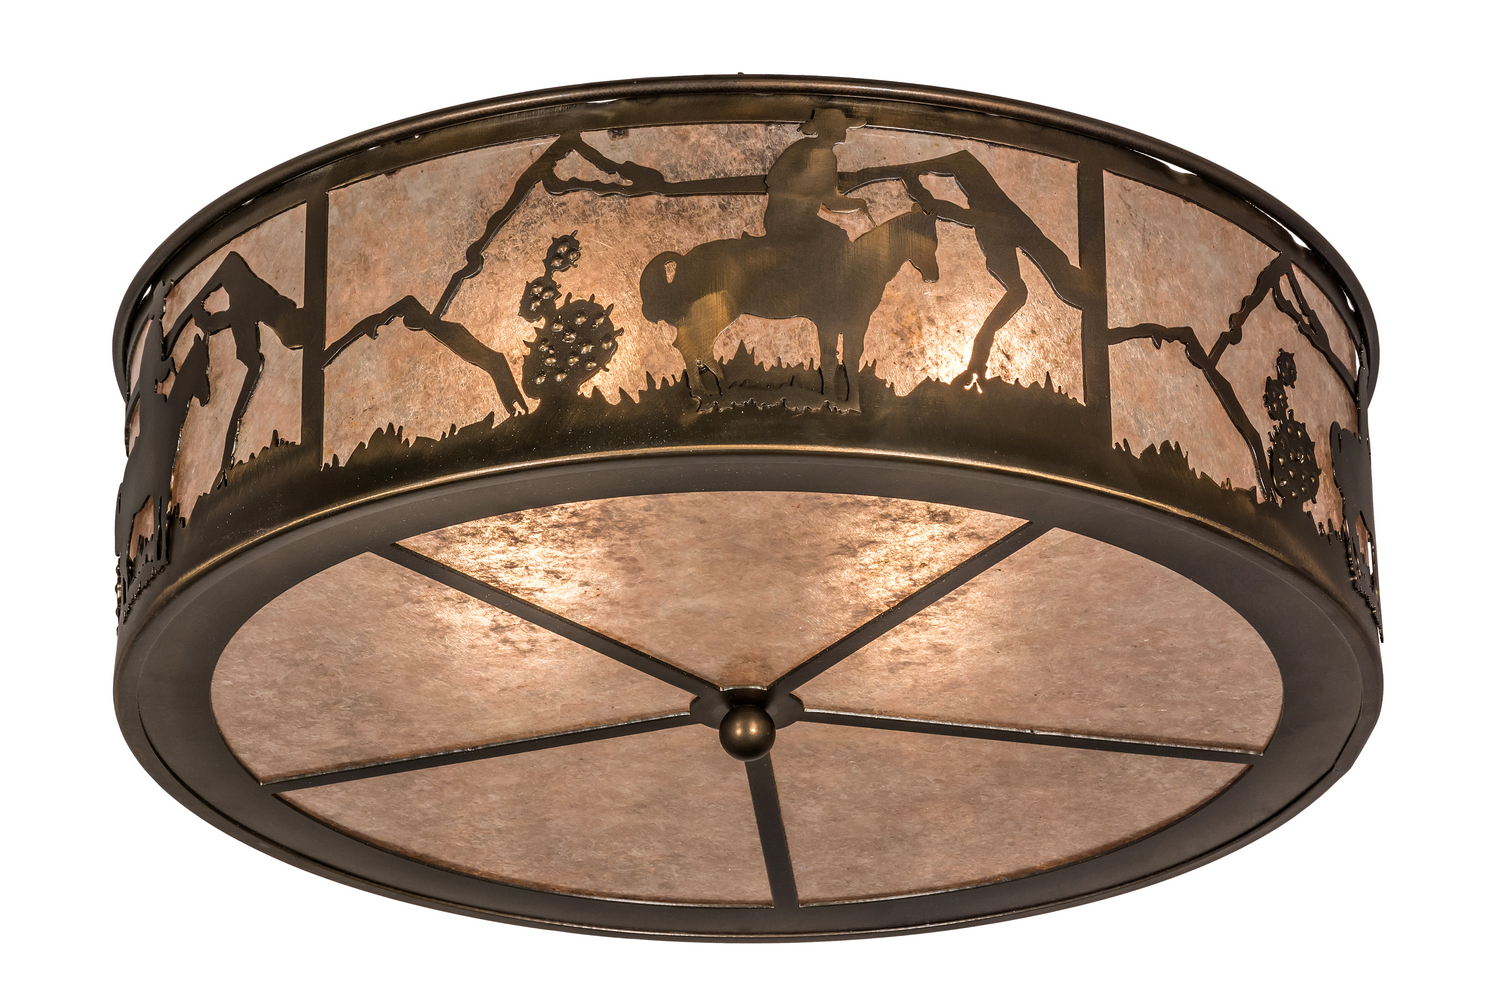 Four Light Flushmount From The Lone Cowboy Collection By Meyda Tiffany 166016